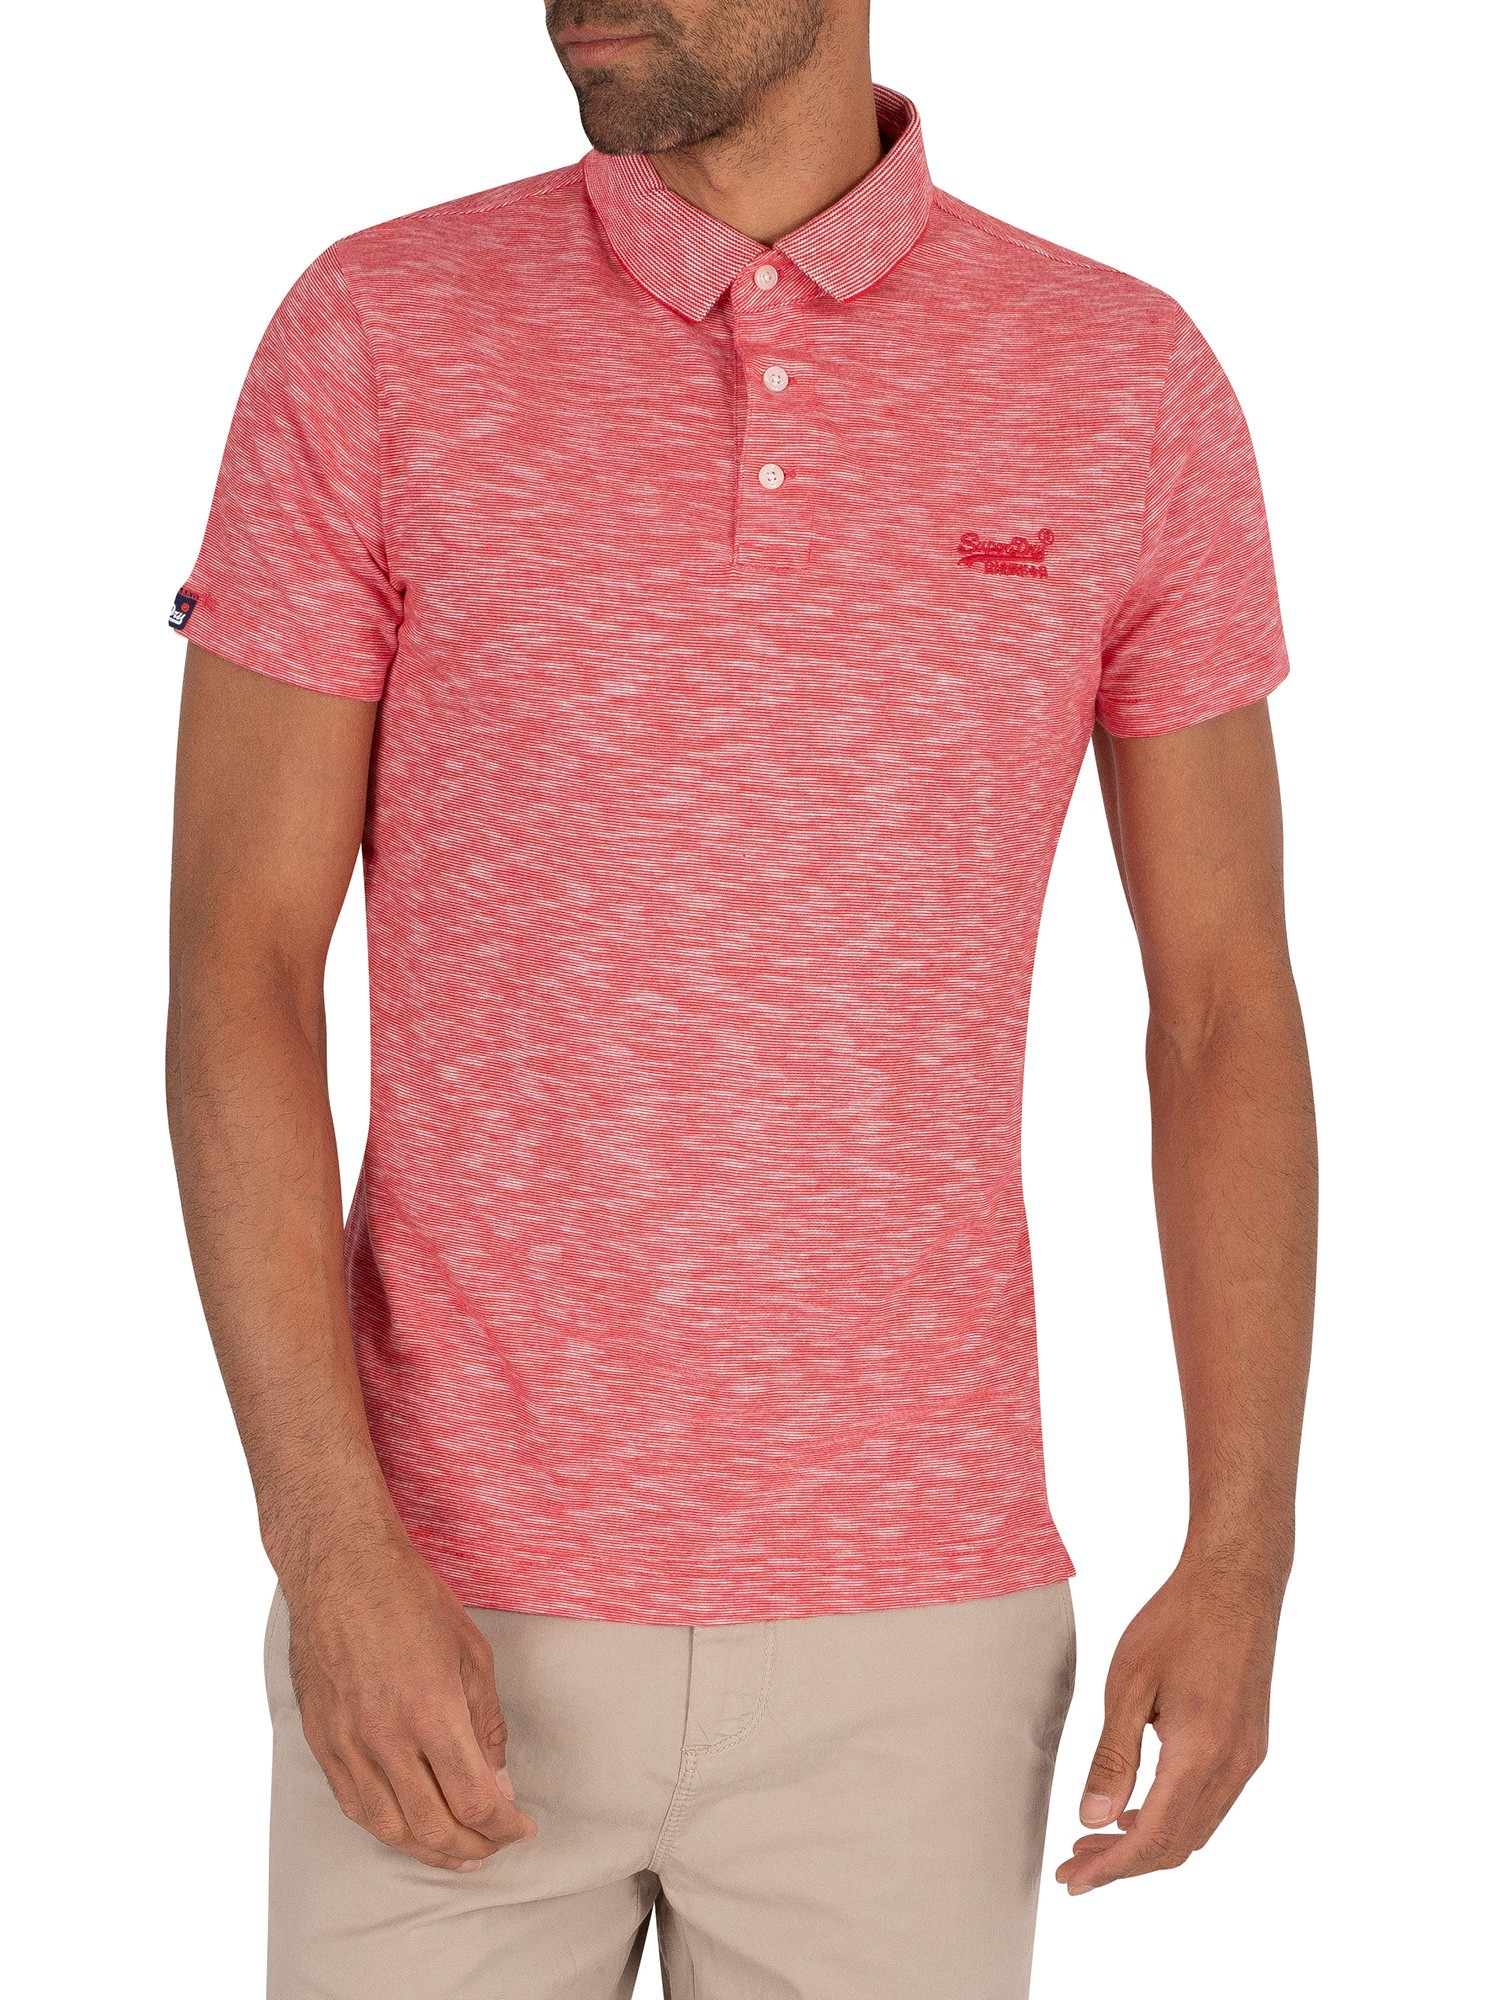 Superdry Orange Label Jersey Polo Shirt - Grenadine Feeder